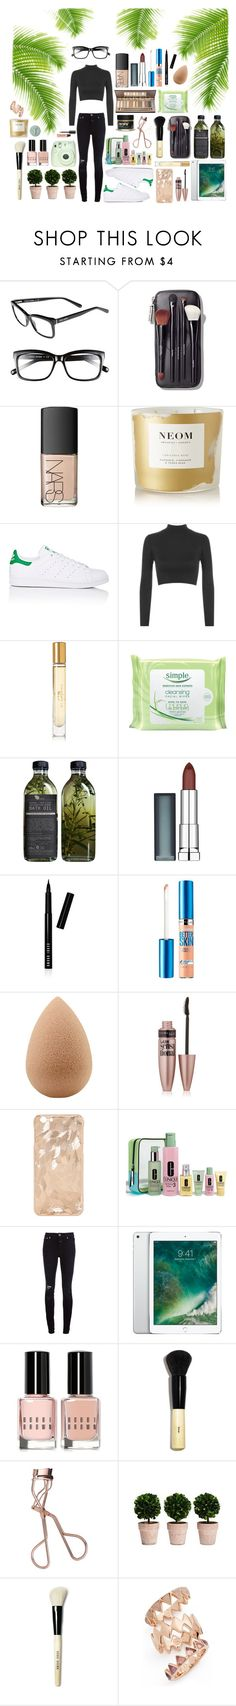 """""""Jungle! #154"""" by lauren-yarrow ❤ liked on Polyvore featuring Bobbi Brown Cosmetics, NARS Cosmetics, NEOM Organics, adidas, WearAll, Burberry, Simple, Maybelline, beautyblender and Clinique"""